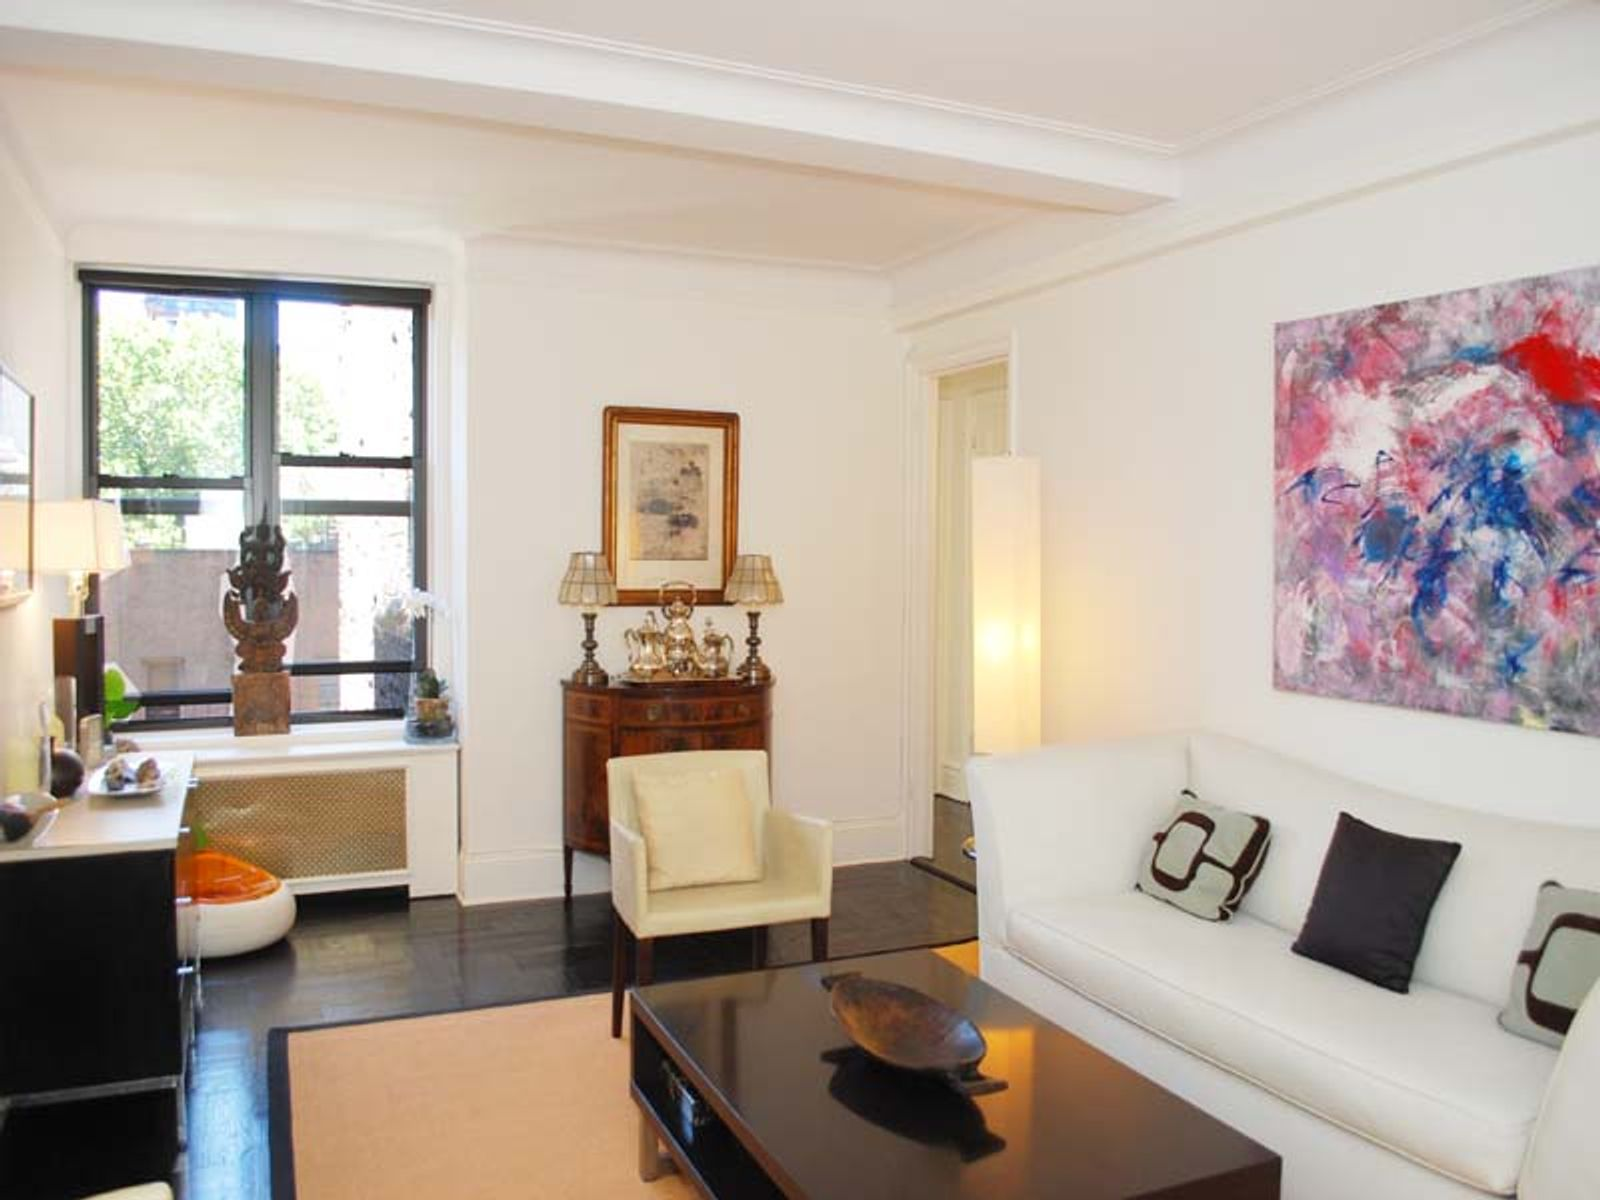 333 East 53rd Street, #3F, New York NY Cooperative - New York City Real Estate